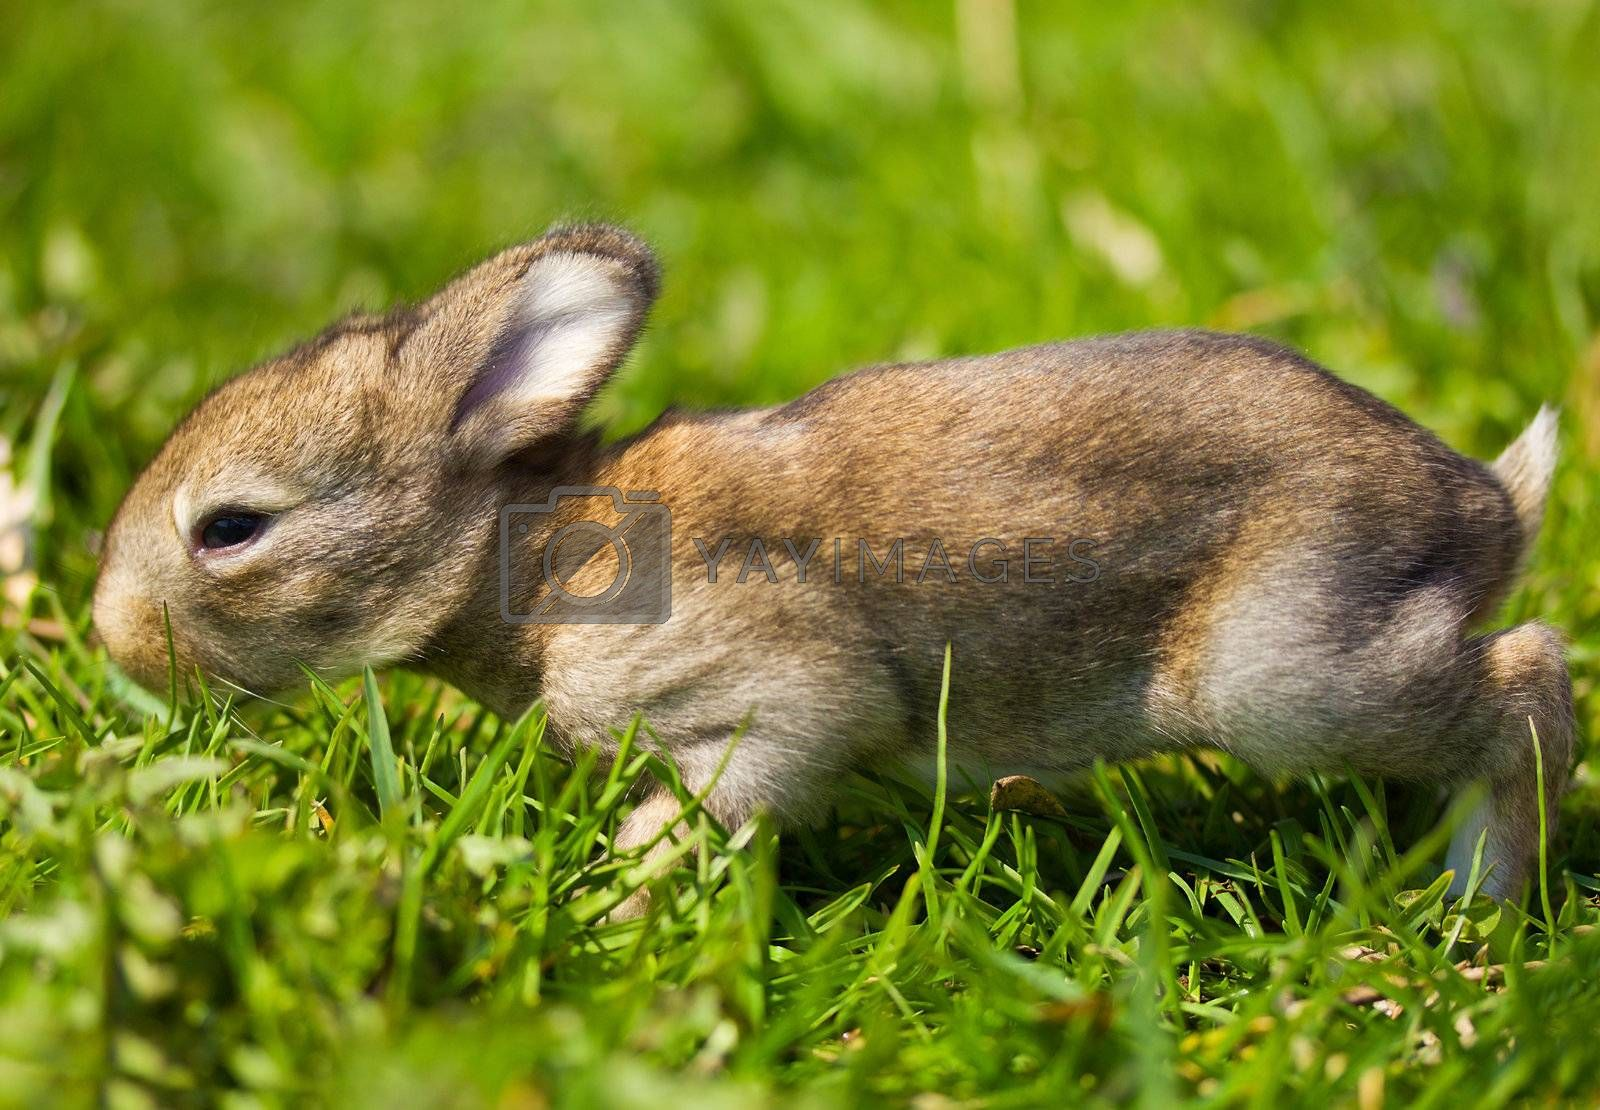 gray bunny on green grass background